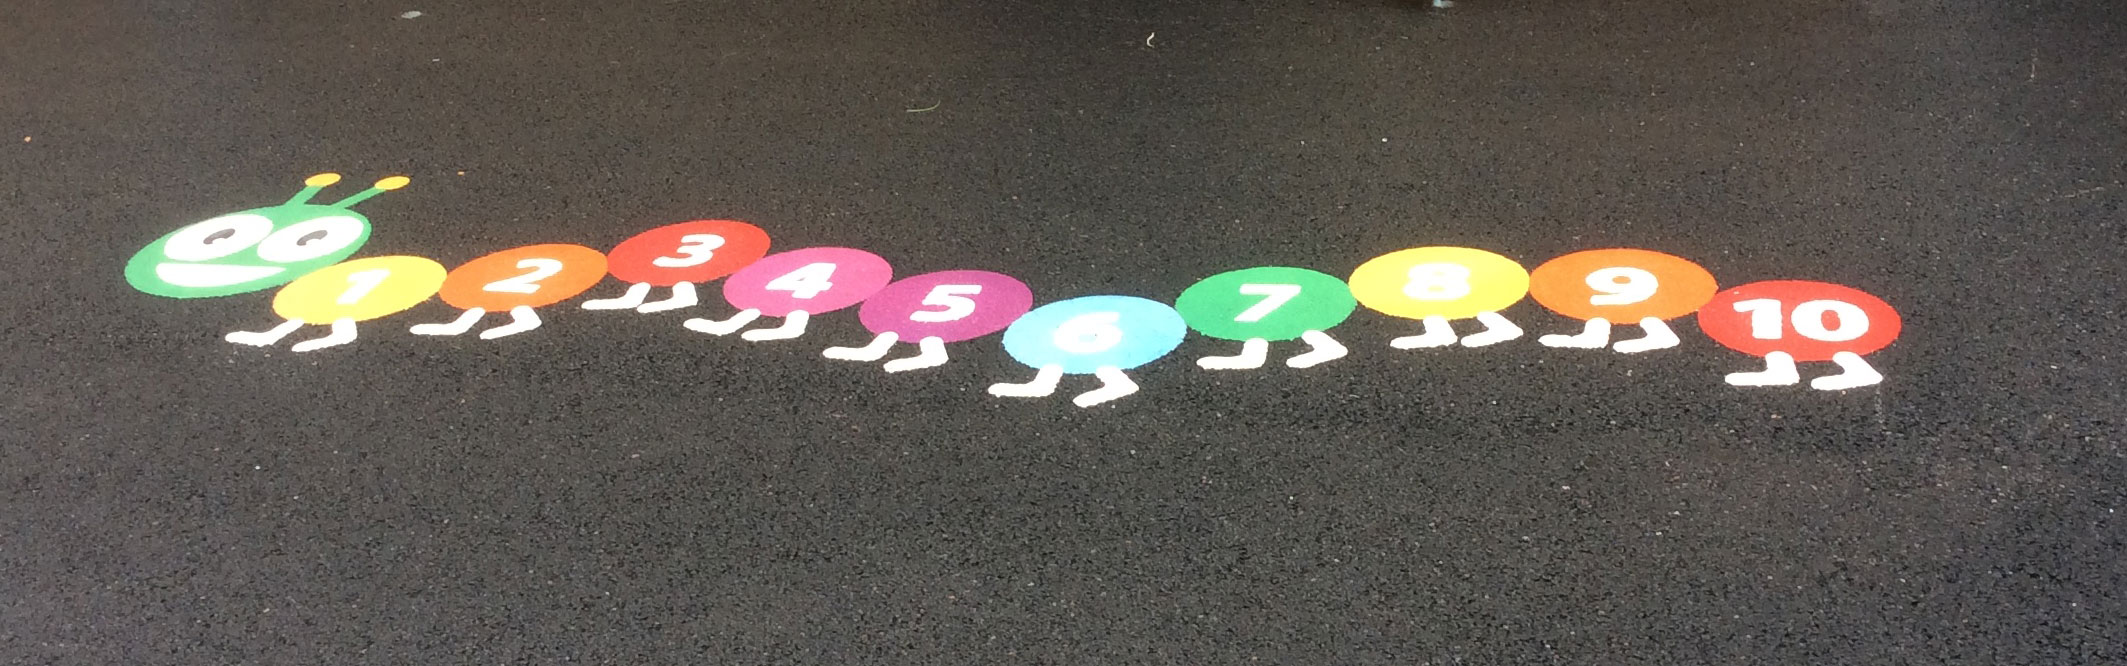 Playground marking recent work photo from Line Marking Services - 01626 331771